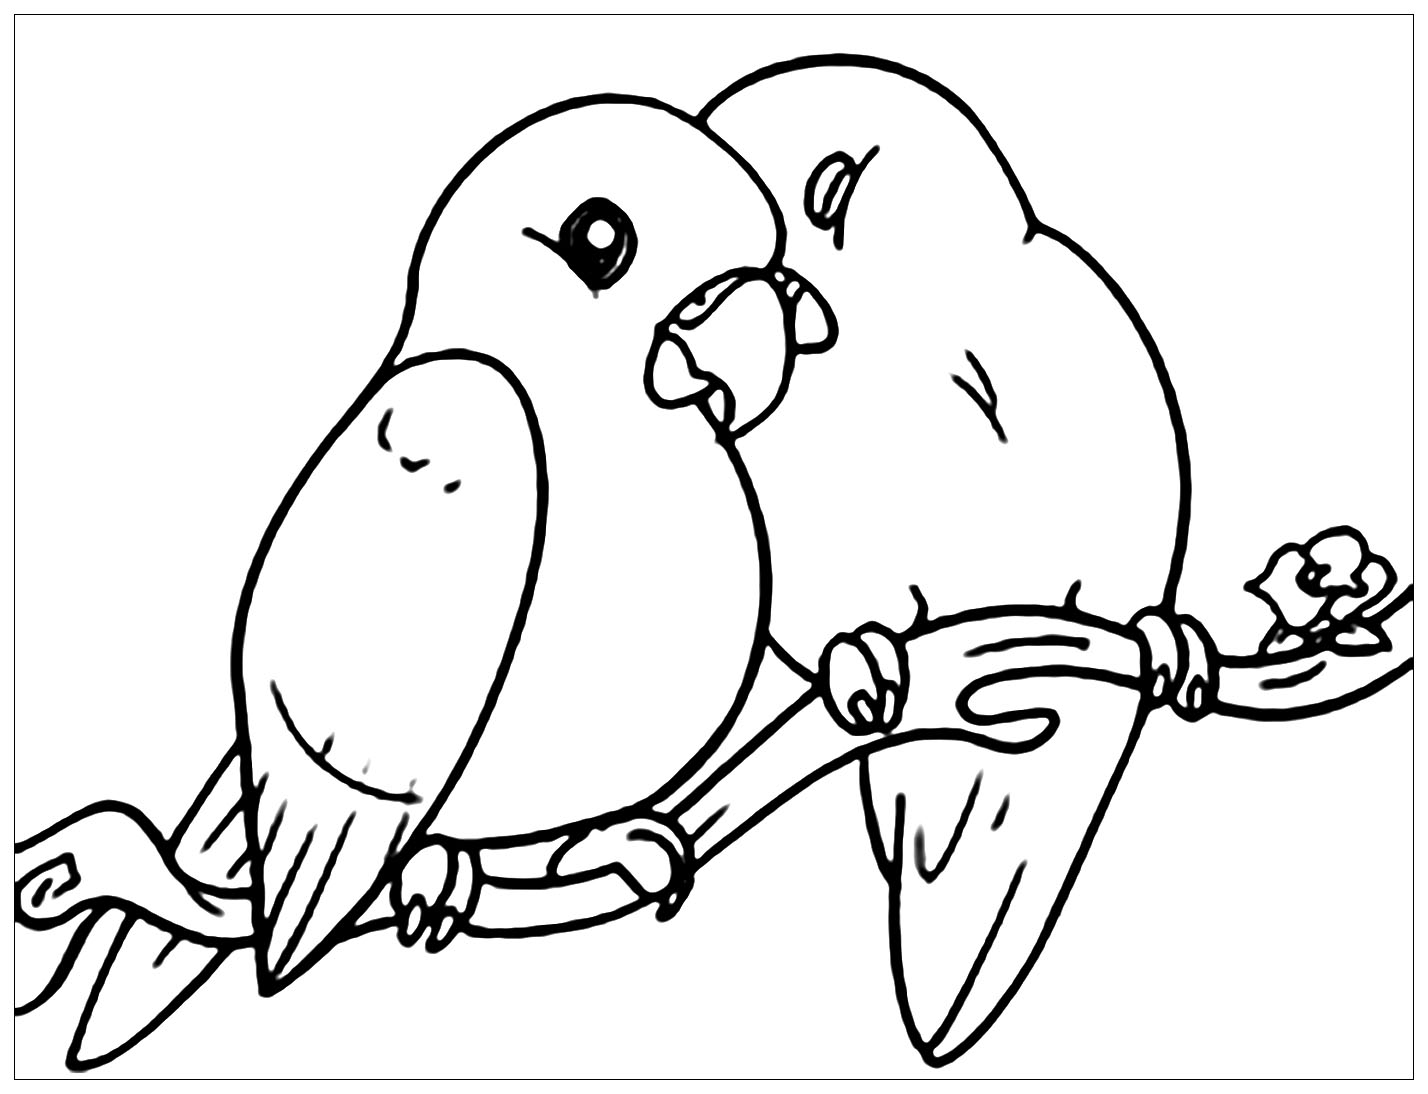 - Birds To Download - Birds Kids Coloring Pages